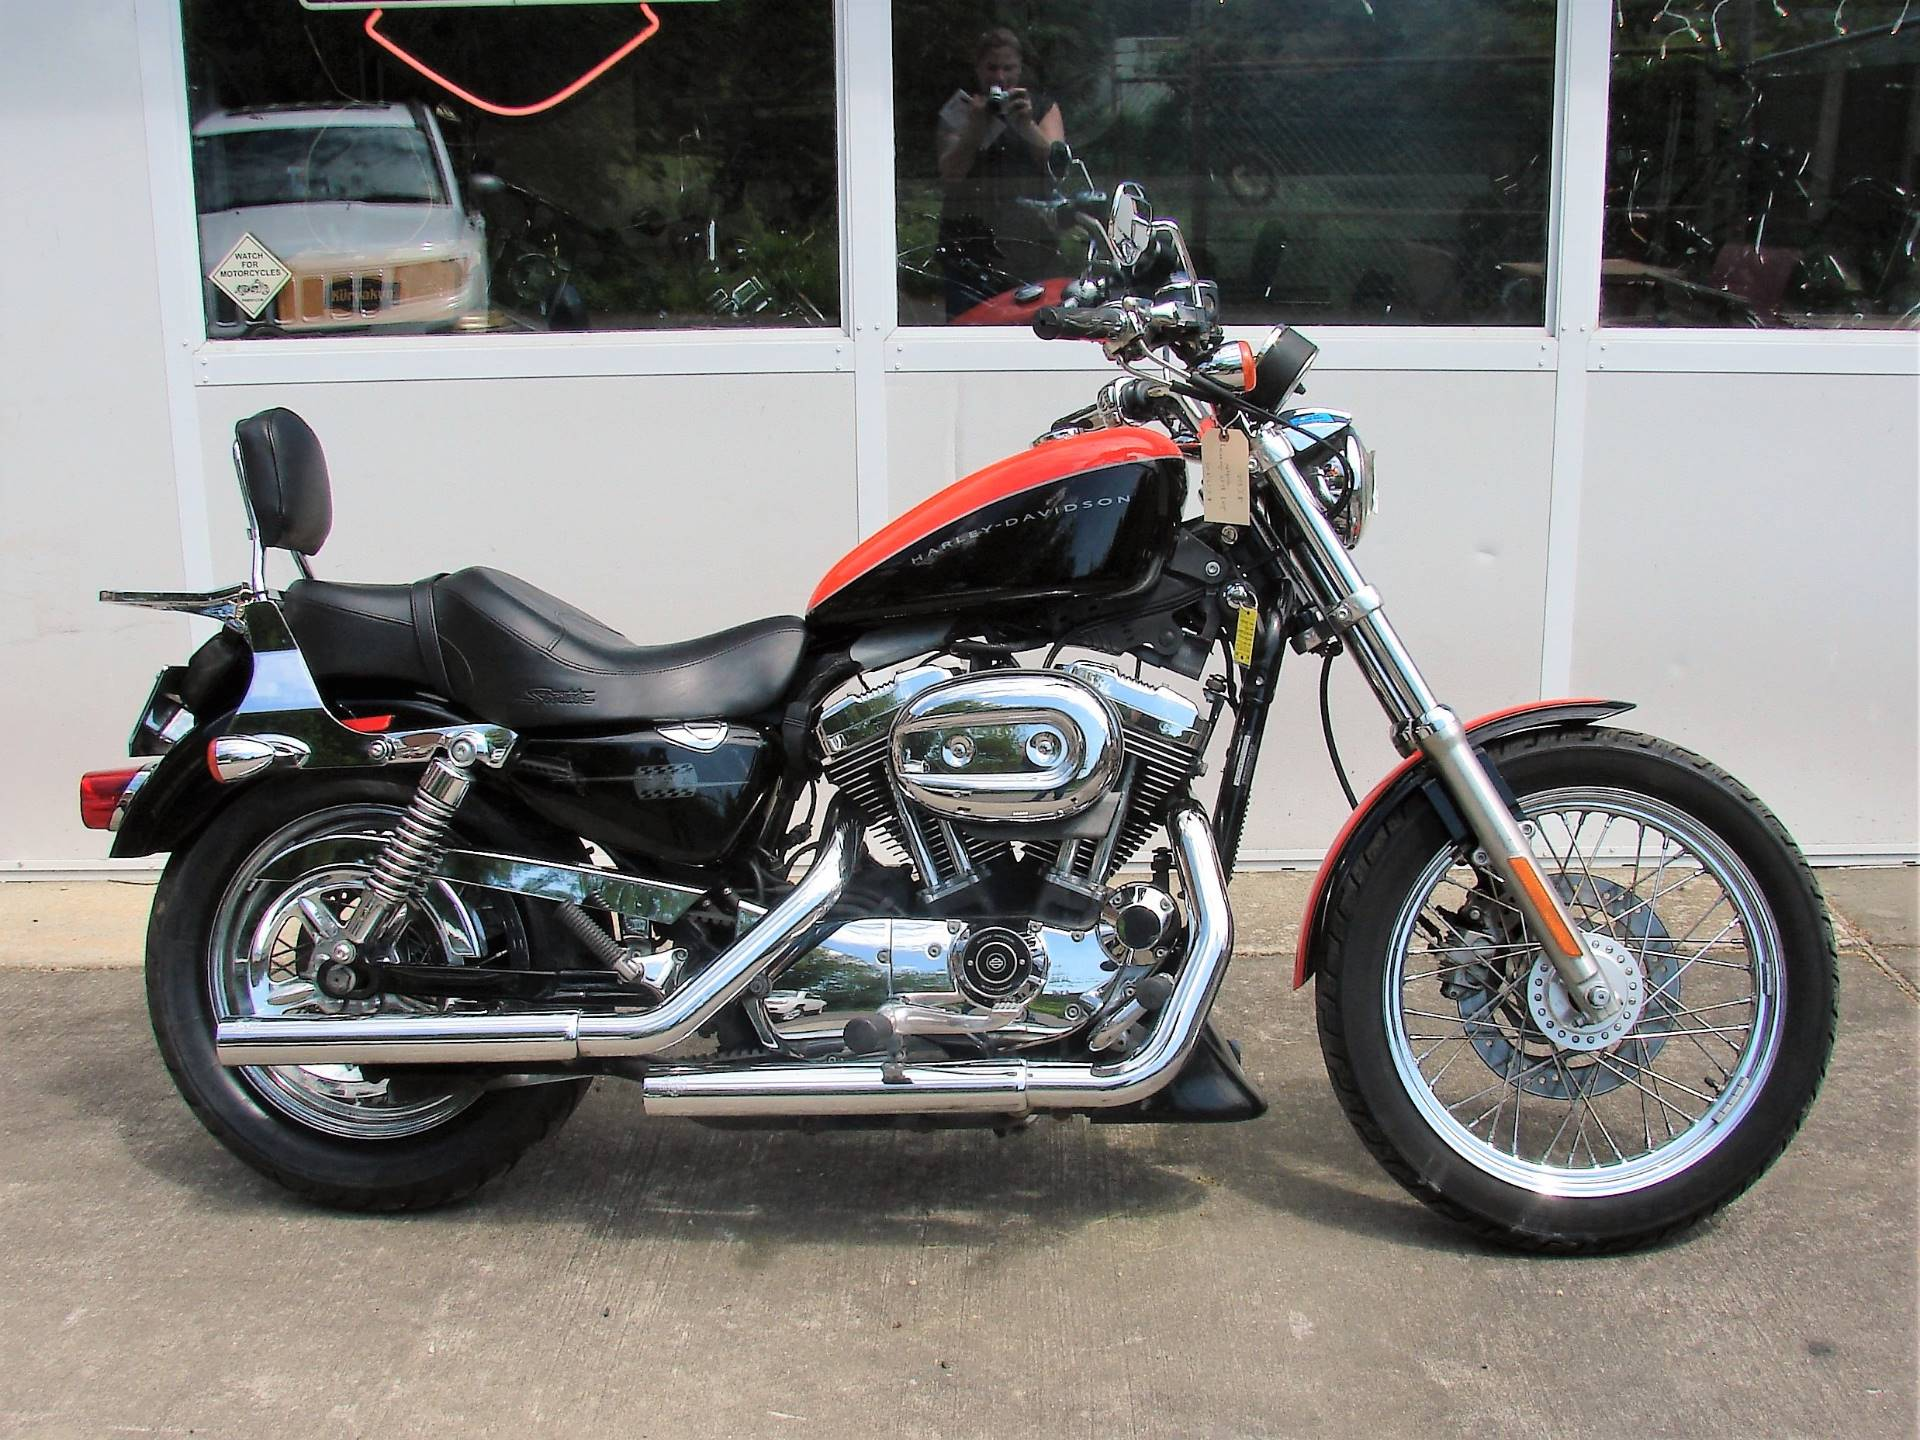 2007 Harley-Davidson 1200 Sportster XL 50  (50th Anniversary Edition) in Williamstown, New Jersey - Photo 1